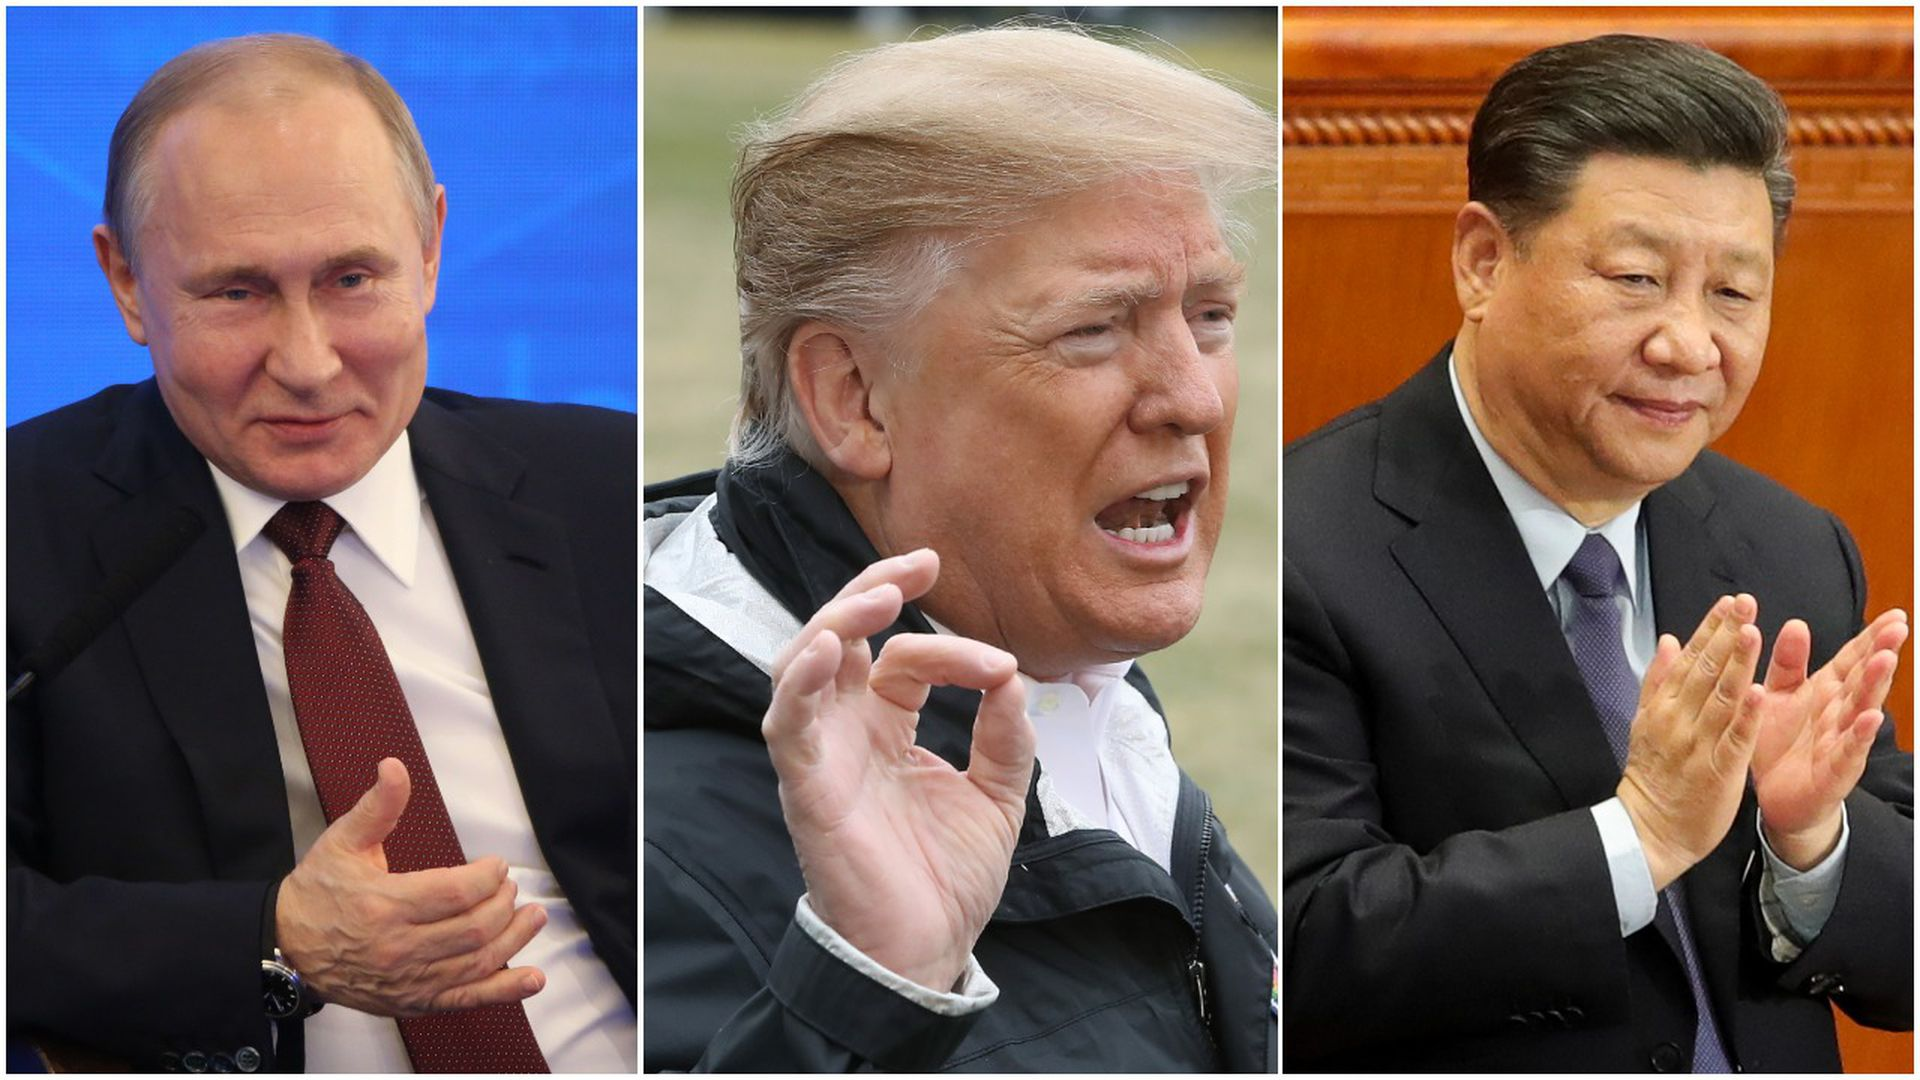 A three-way split screen of President Trump, Vladimir Putin and Xi Jinping.